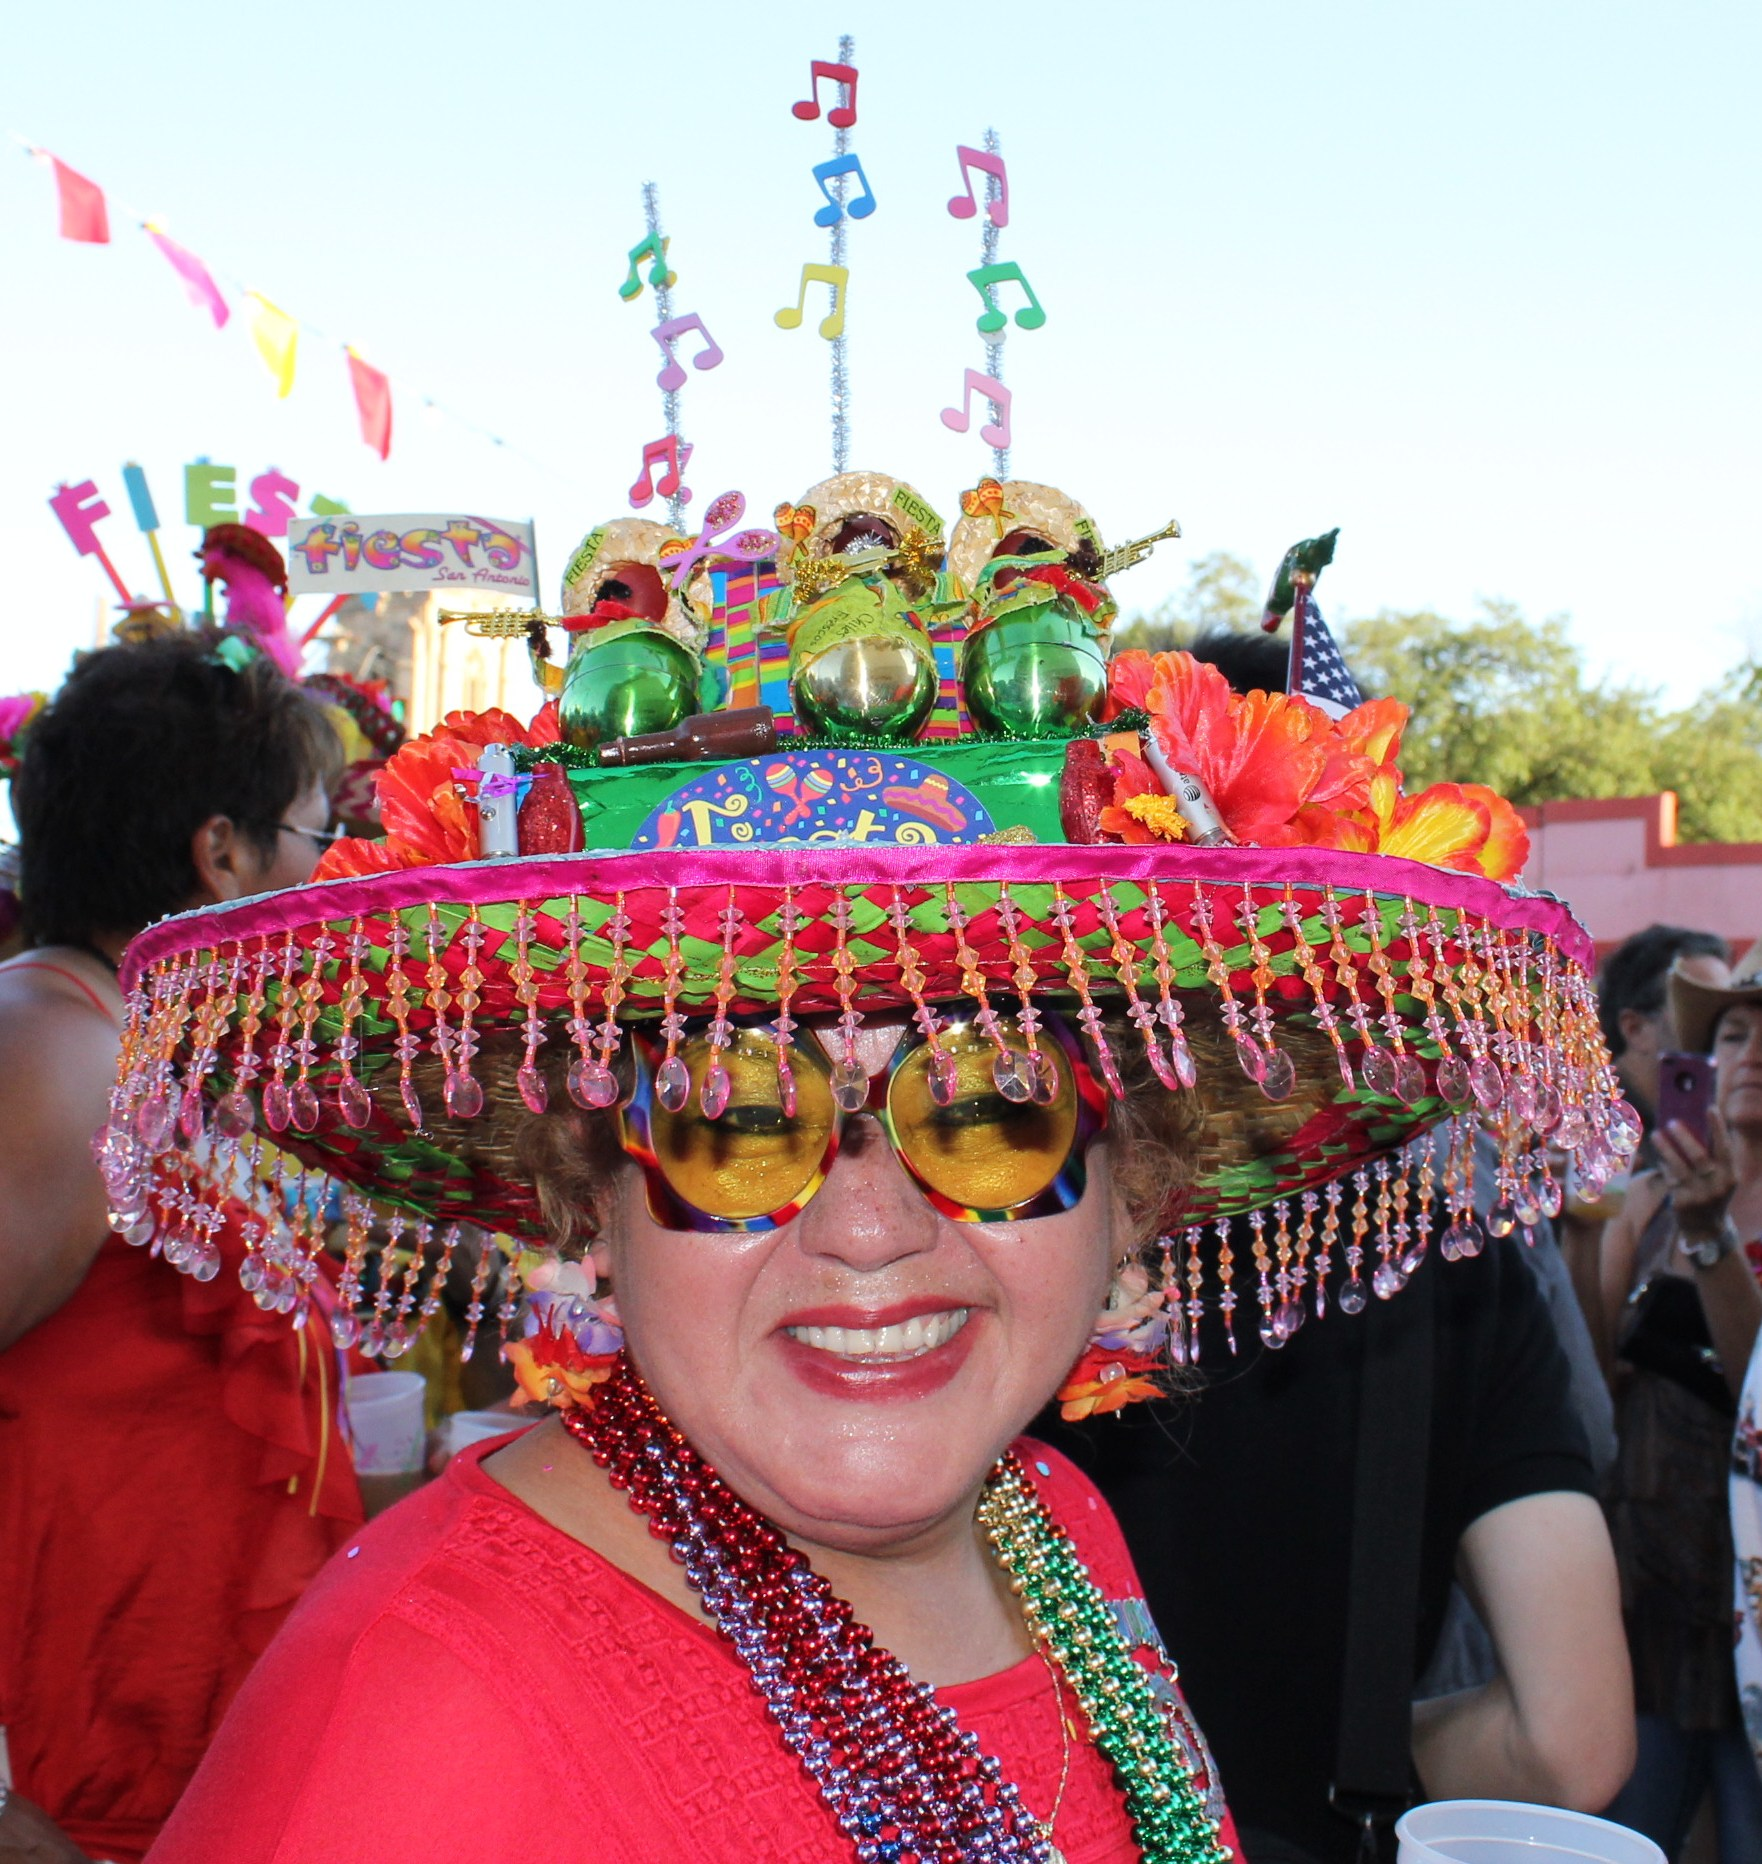 Fiesta san antonio image search results 0 html code fiesta hats spotted at niosa and at the fiesta hat show luncheon